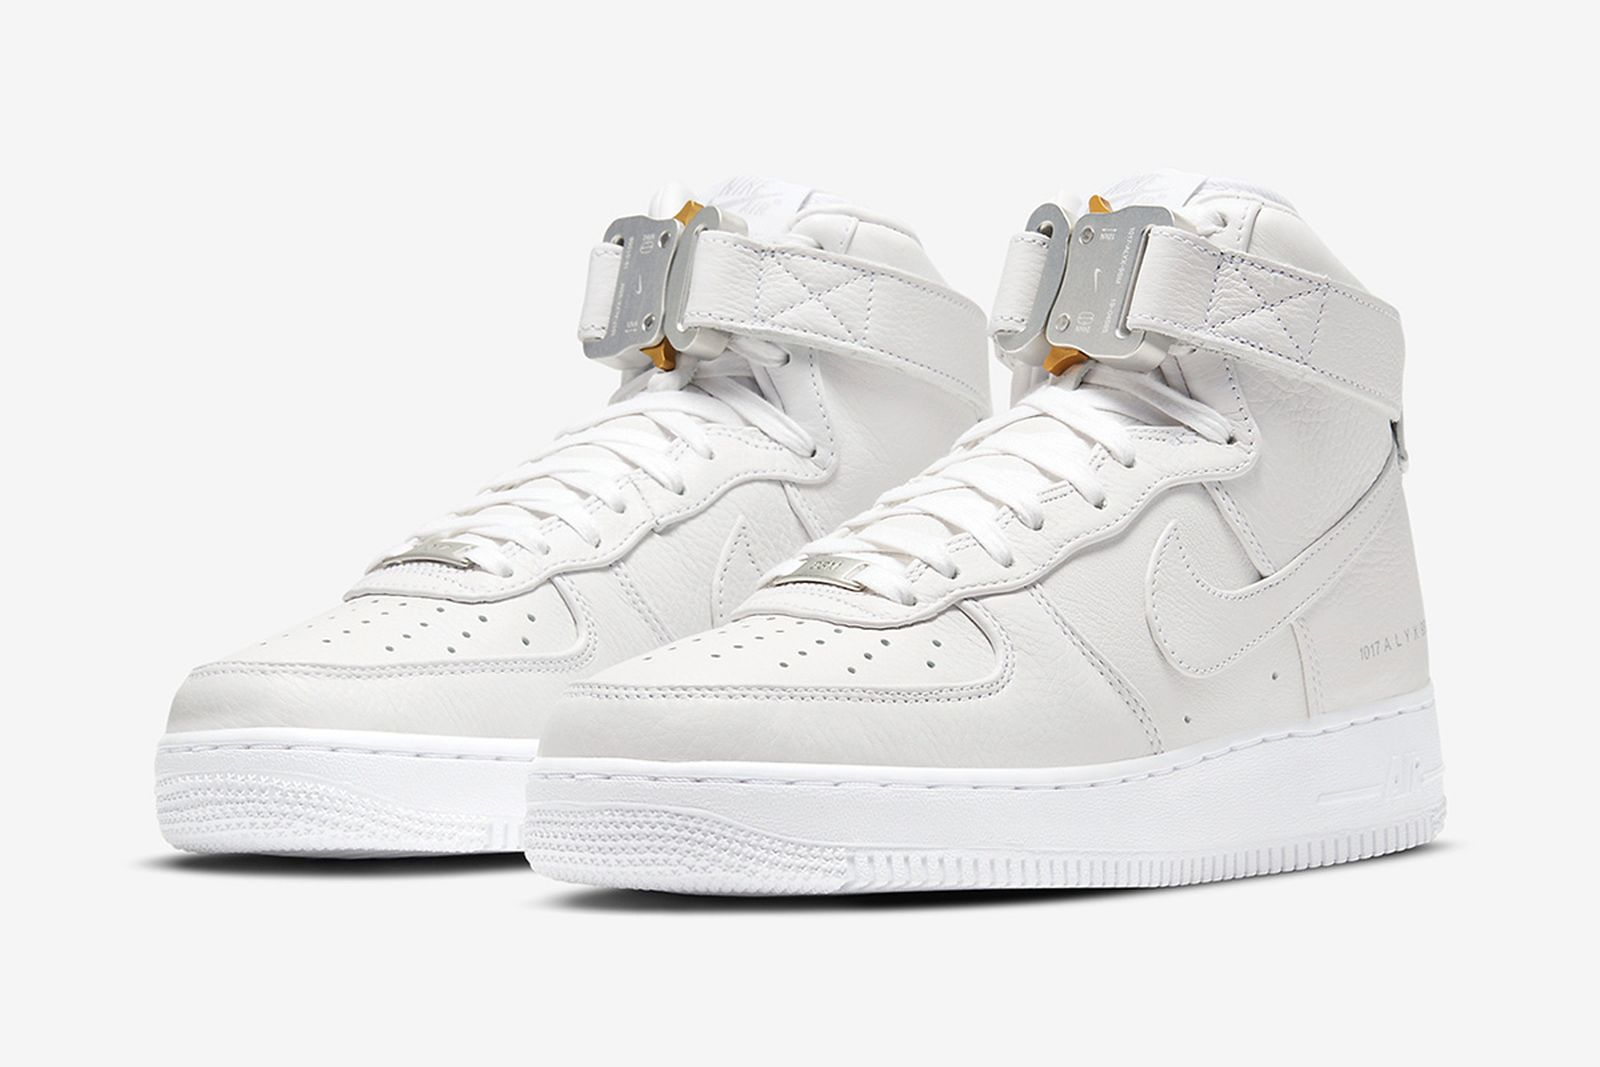 1017-alyx-9sm-nike-air-force-1-high-white-release-date-price-06